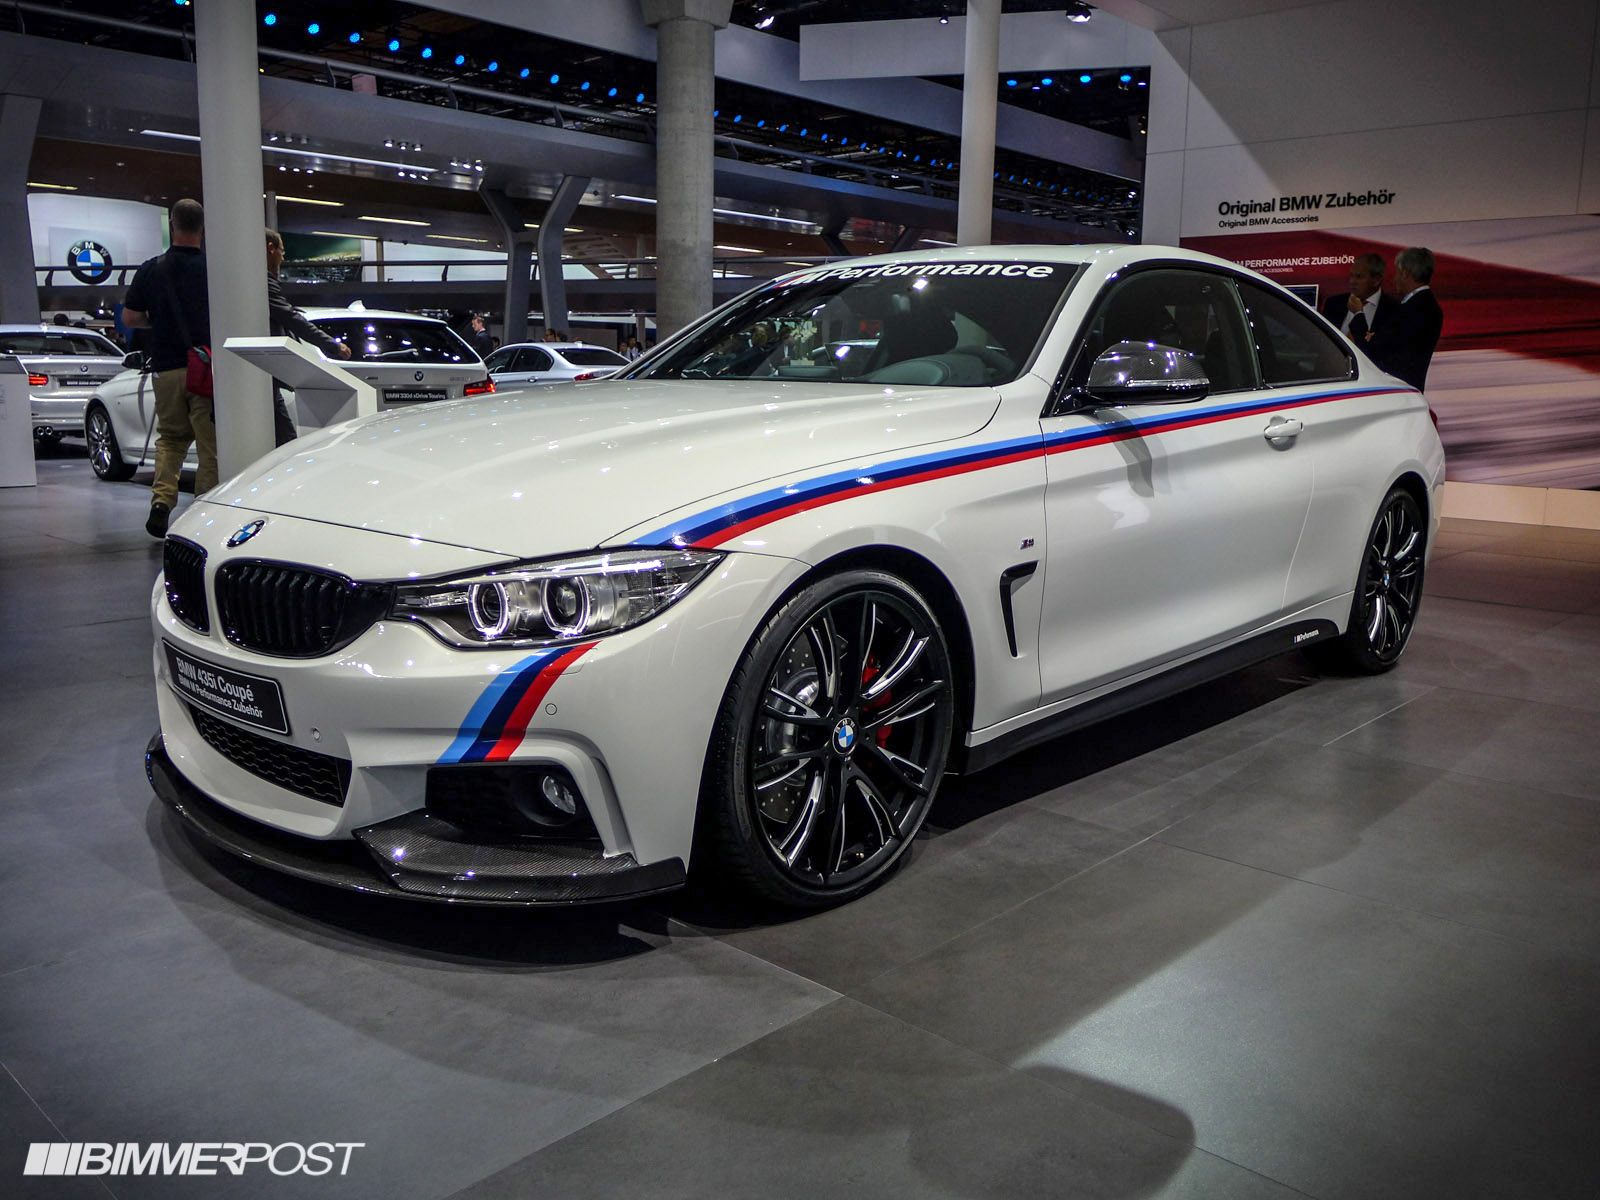 bmw 440i coupe bmw forum bmw news and bmw blog bimmerpost. Black Bedroom Furniture Sets. Home Design Ideas